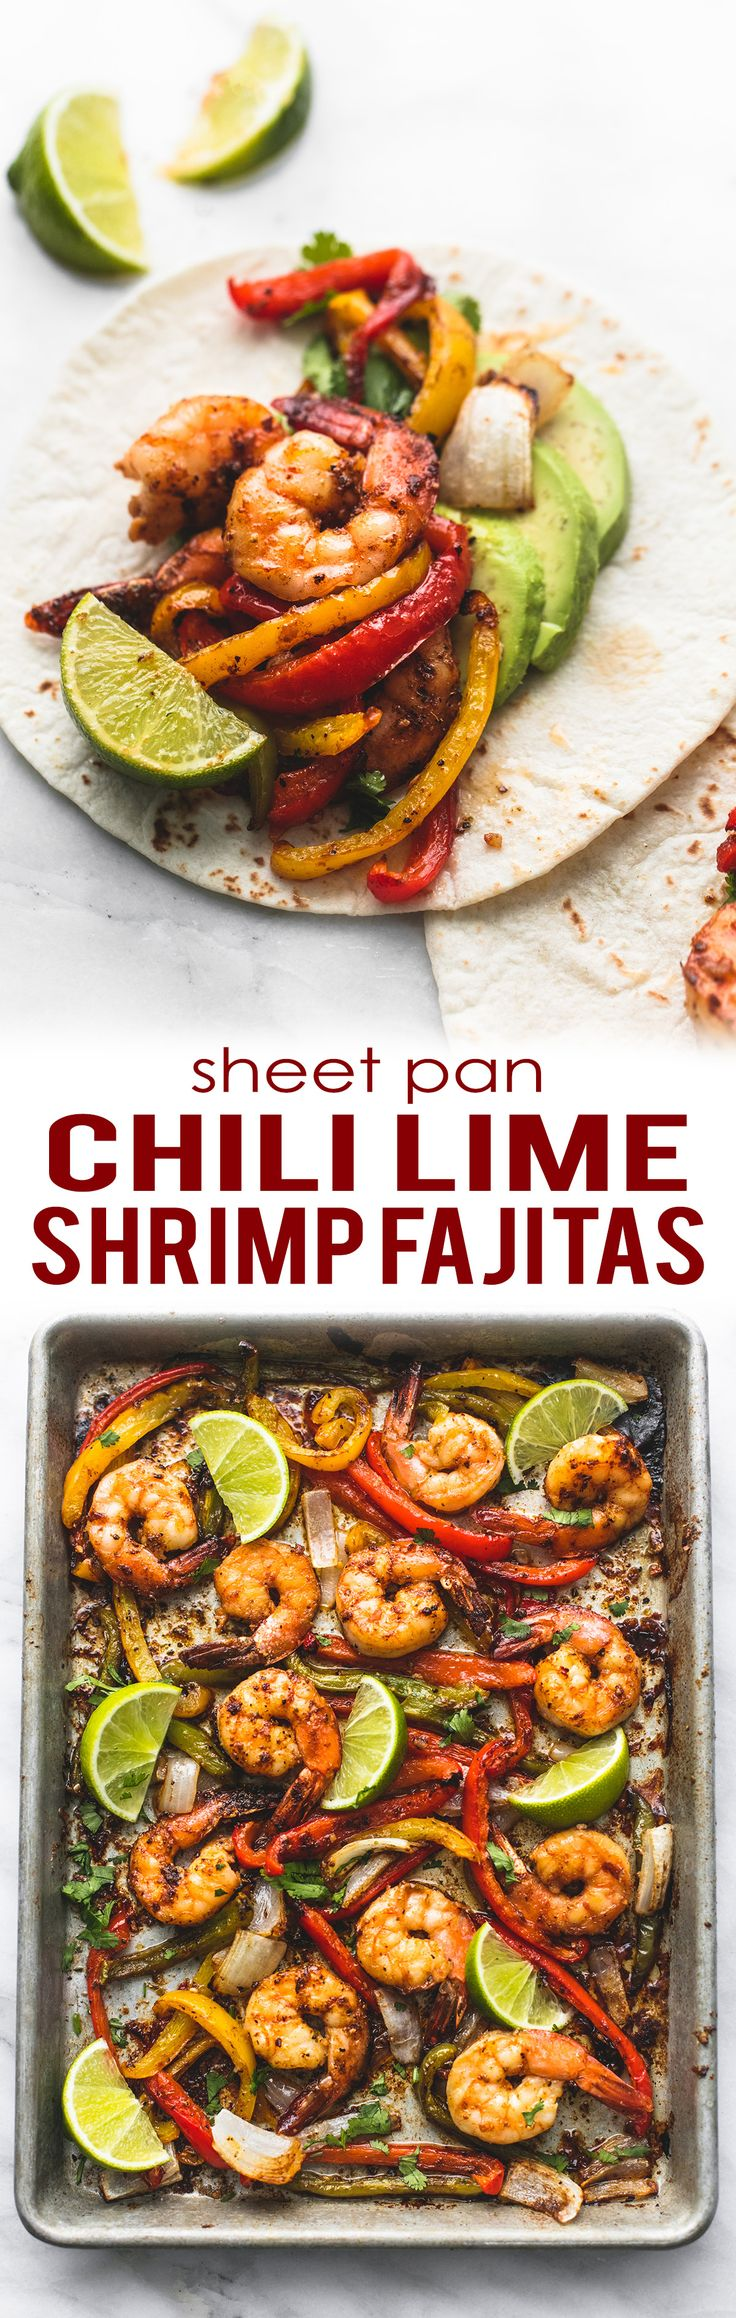 Slow Cooker: Sheet Pan Chili Lime Shrimp Fajitas - Creme De La ...